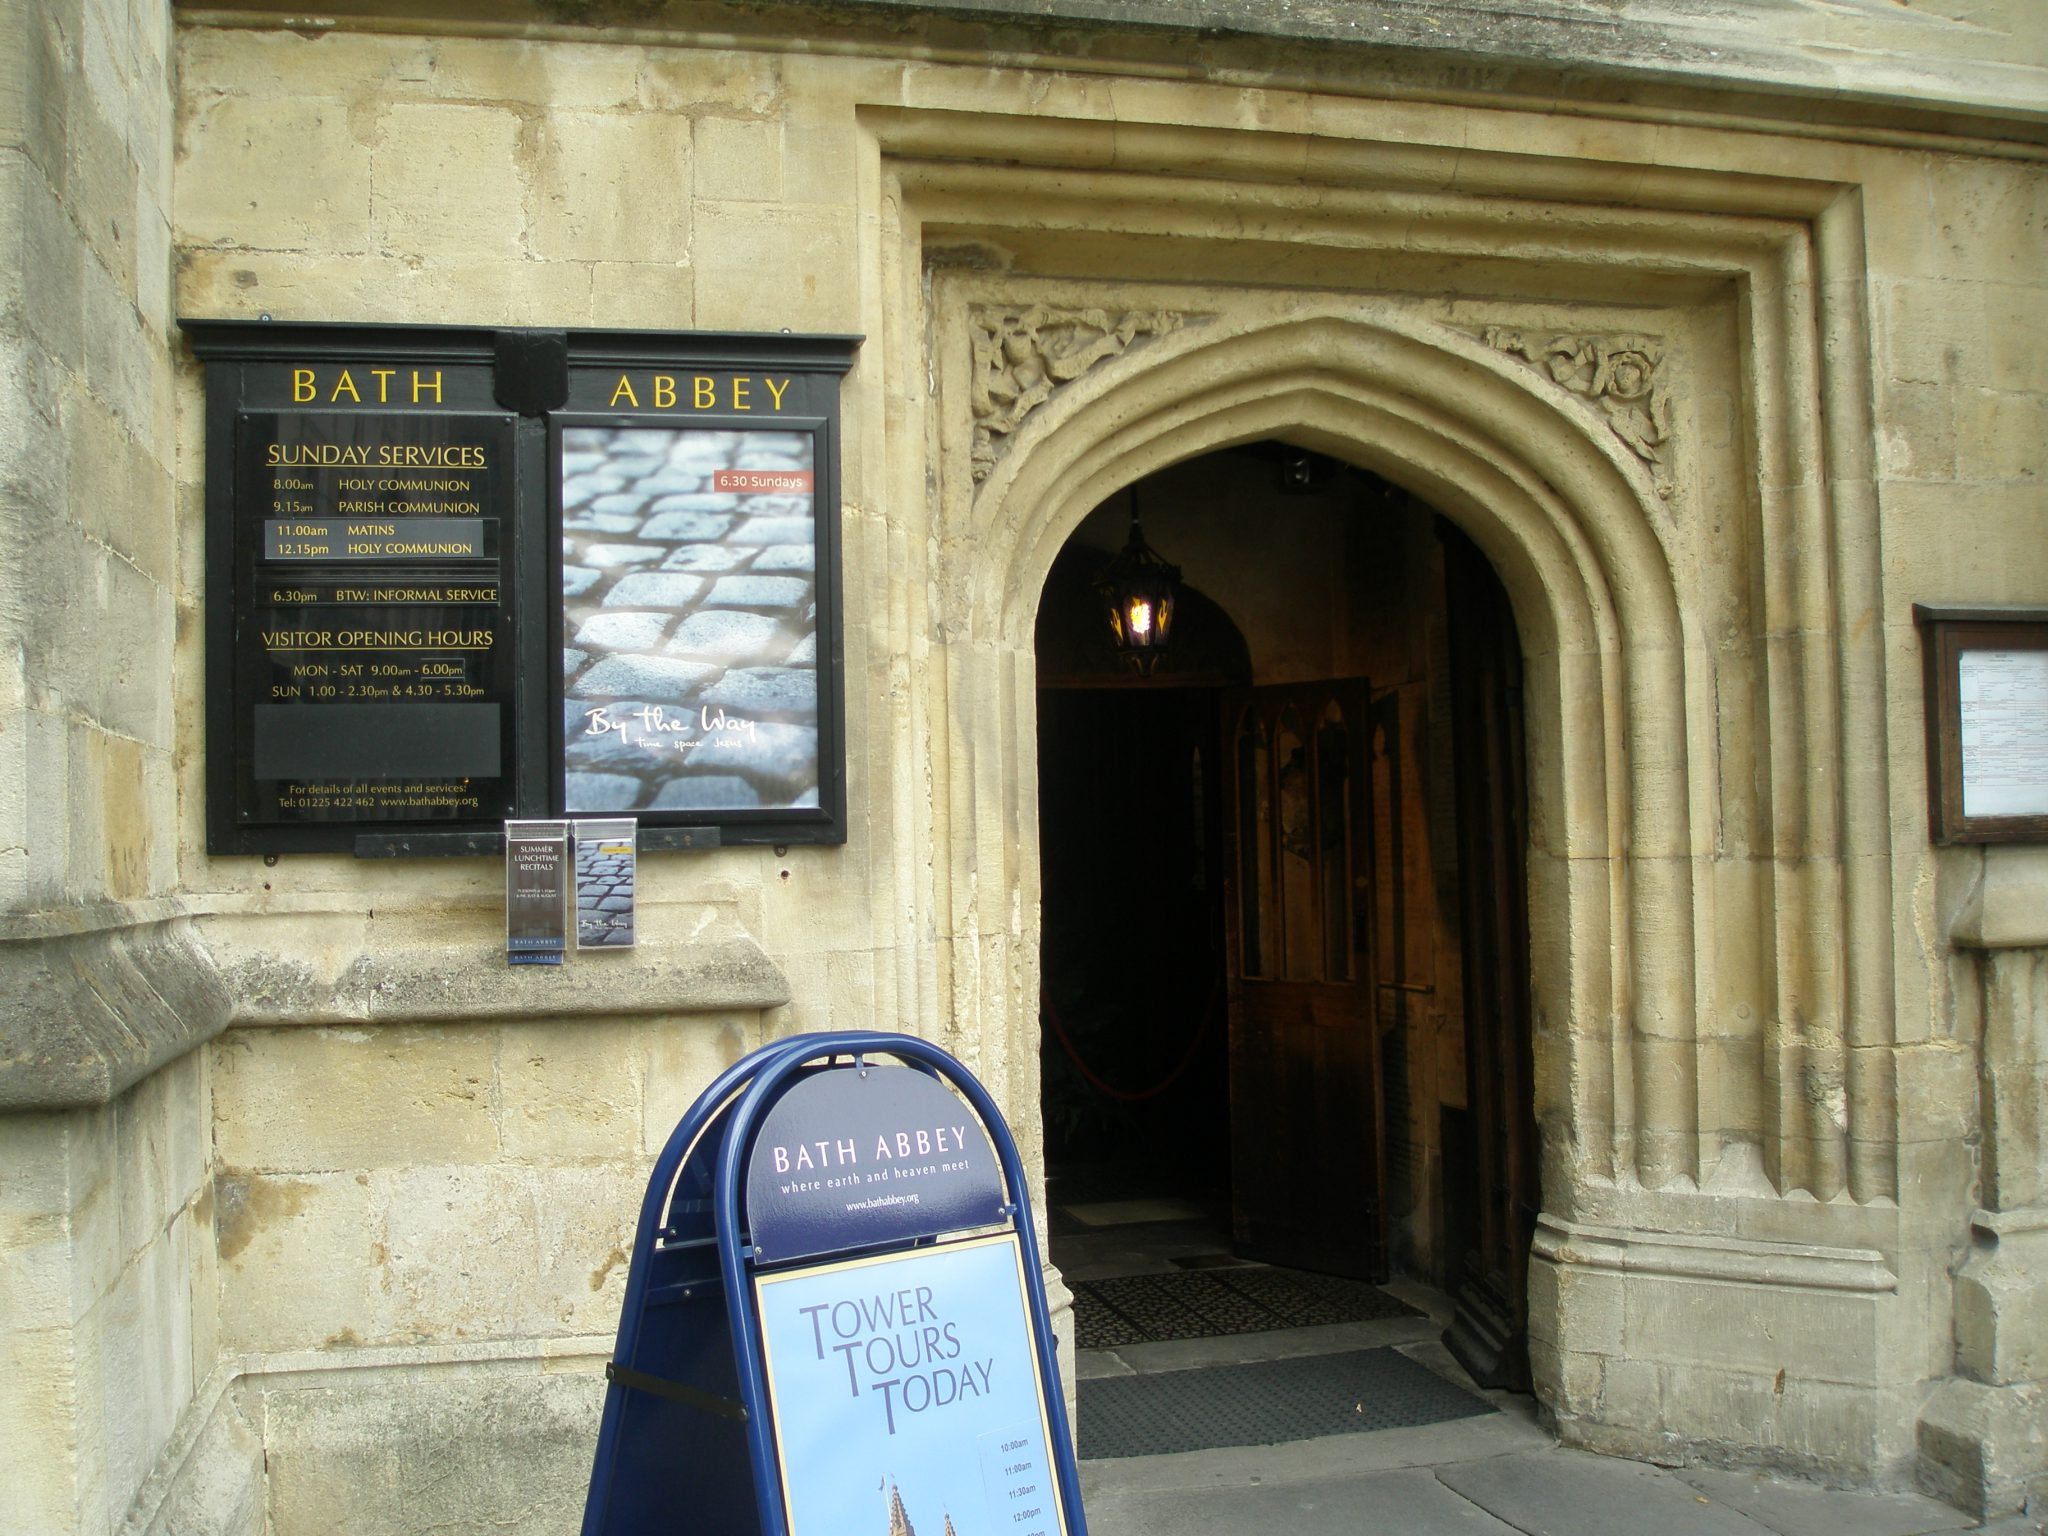 Entry to Bath Abbey